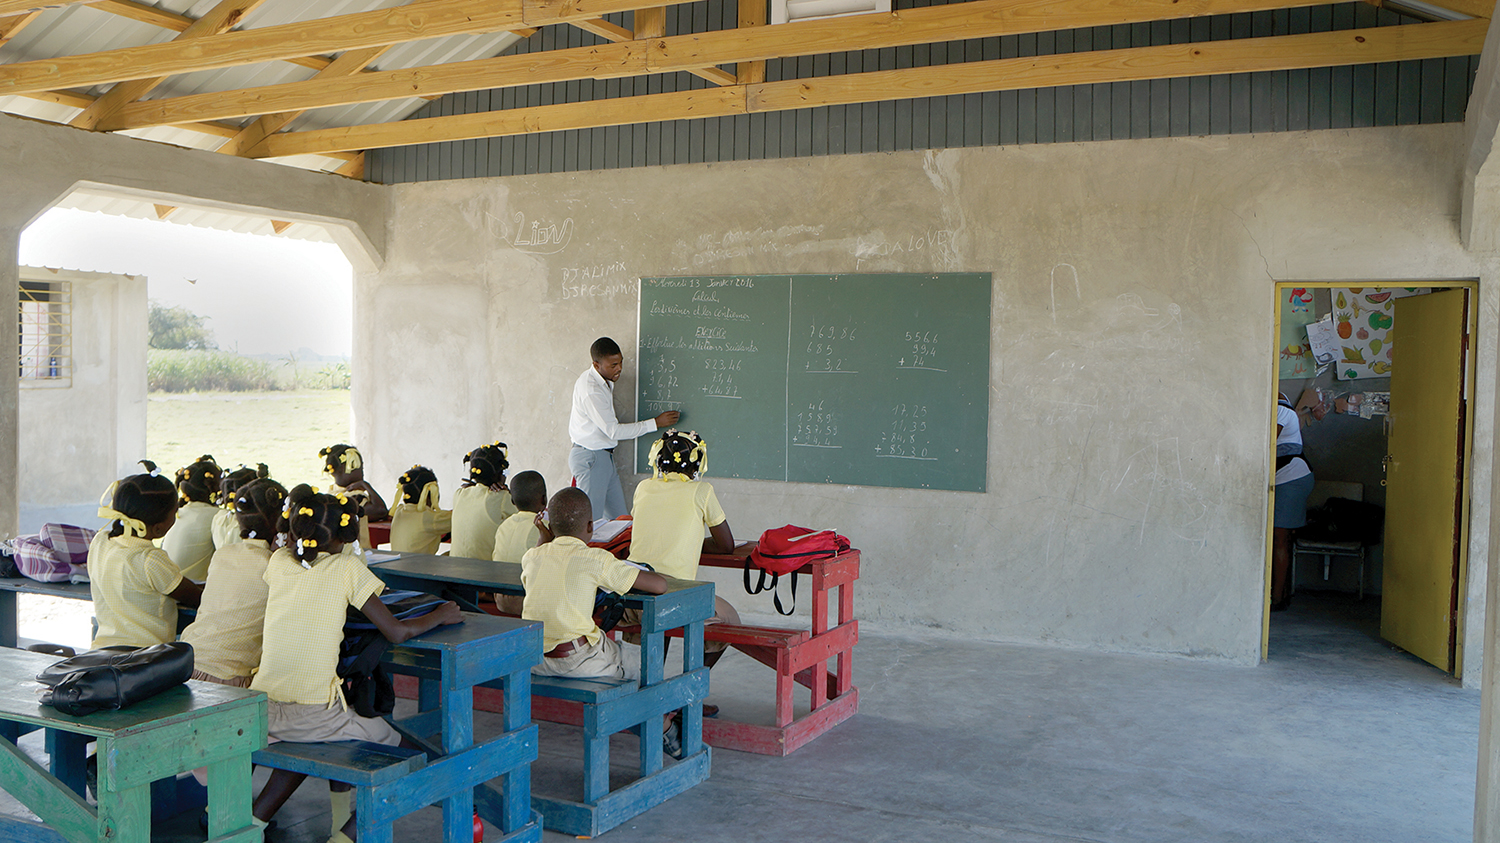 Painting churches and schools is an ongoing responsibility, as we desire to keep our mission shining brightly. Providing local jobs, our school benches are entirely made in Haiti by local carpenters.